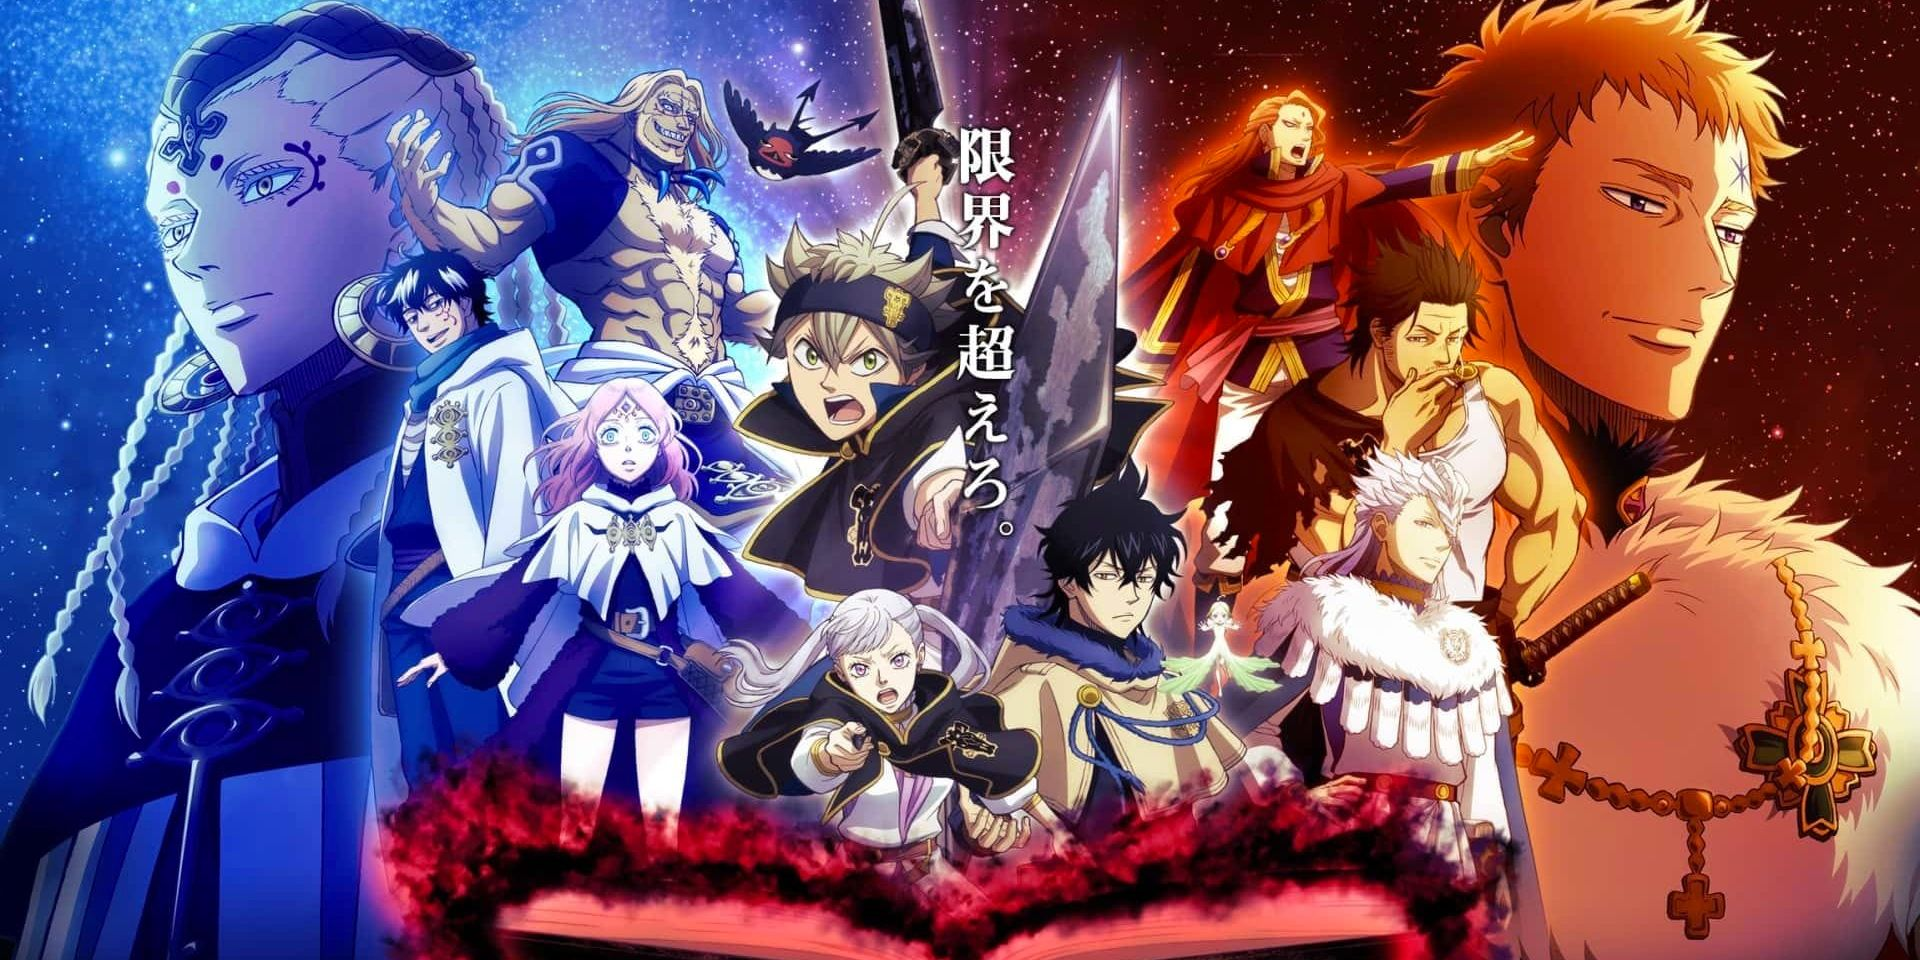 Black Clover Needs To Commit To Killing Characters Cbr Tons of awesome julius novachrono wallpapers to download for free. black clover needs to commit to killing